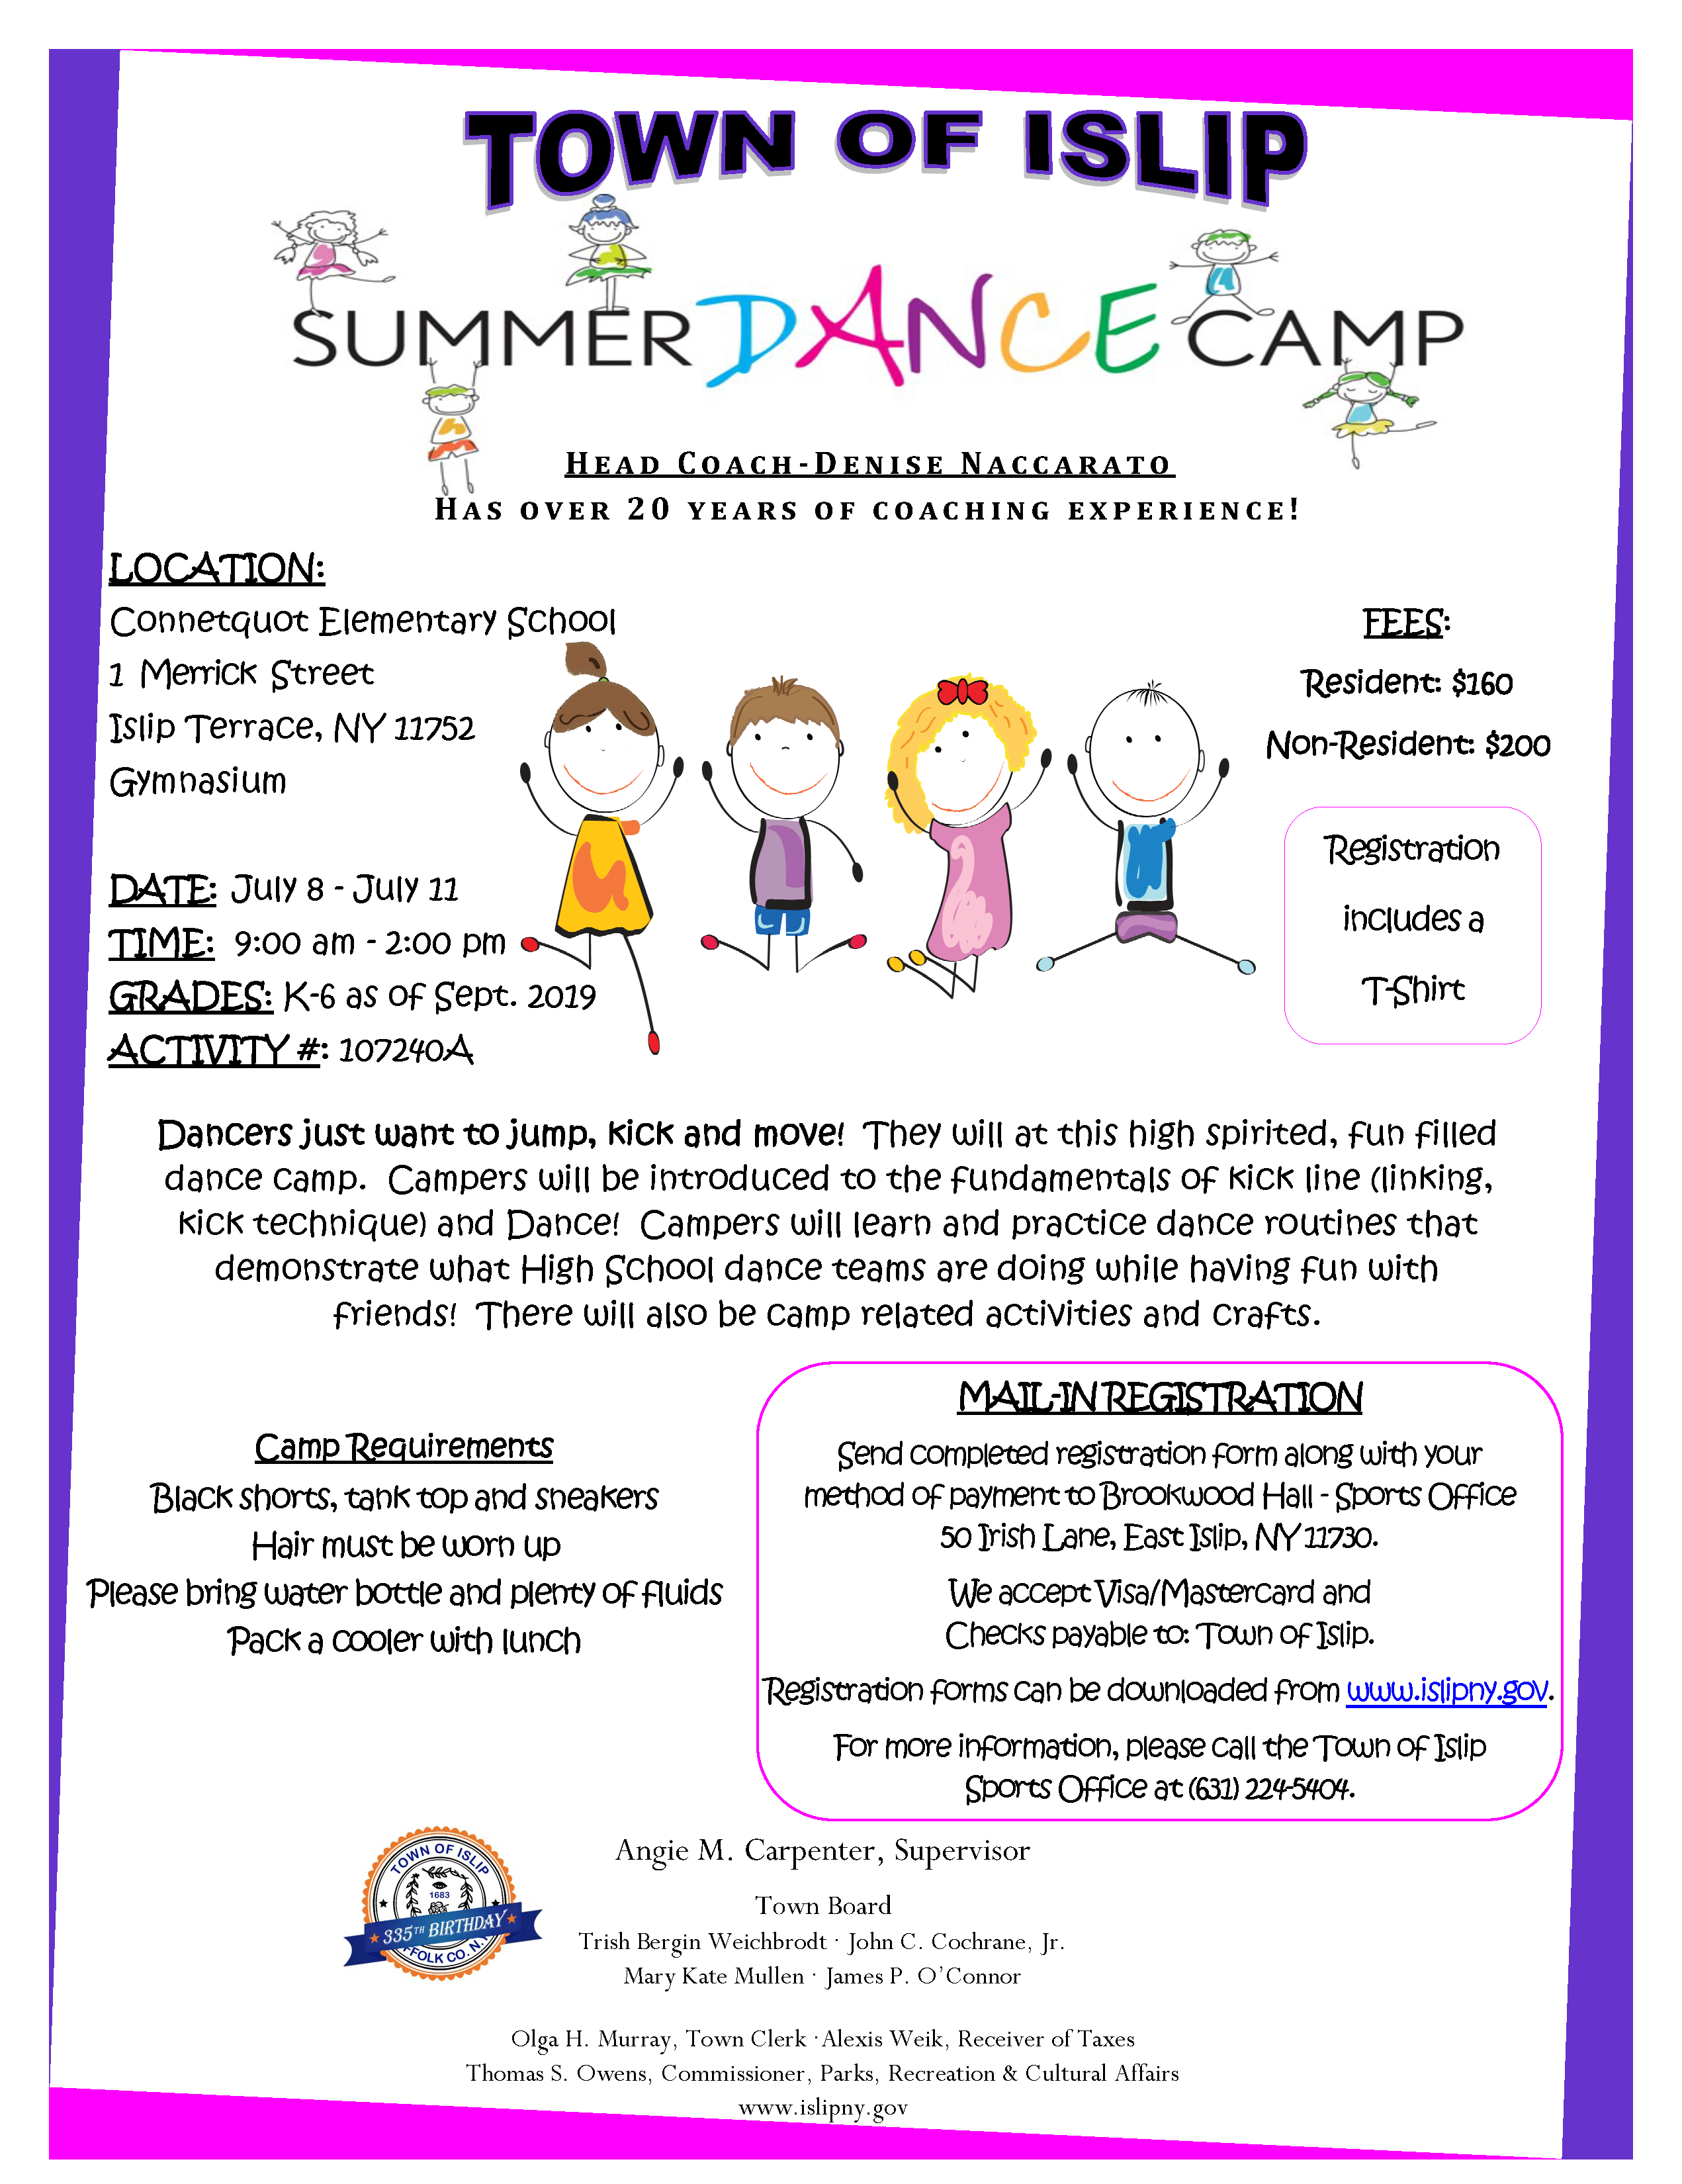 a flyer announcing the 2019 summer dance camp, call (631) 224-5404 for more information.